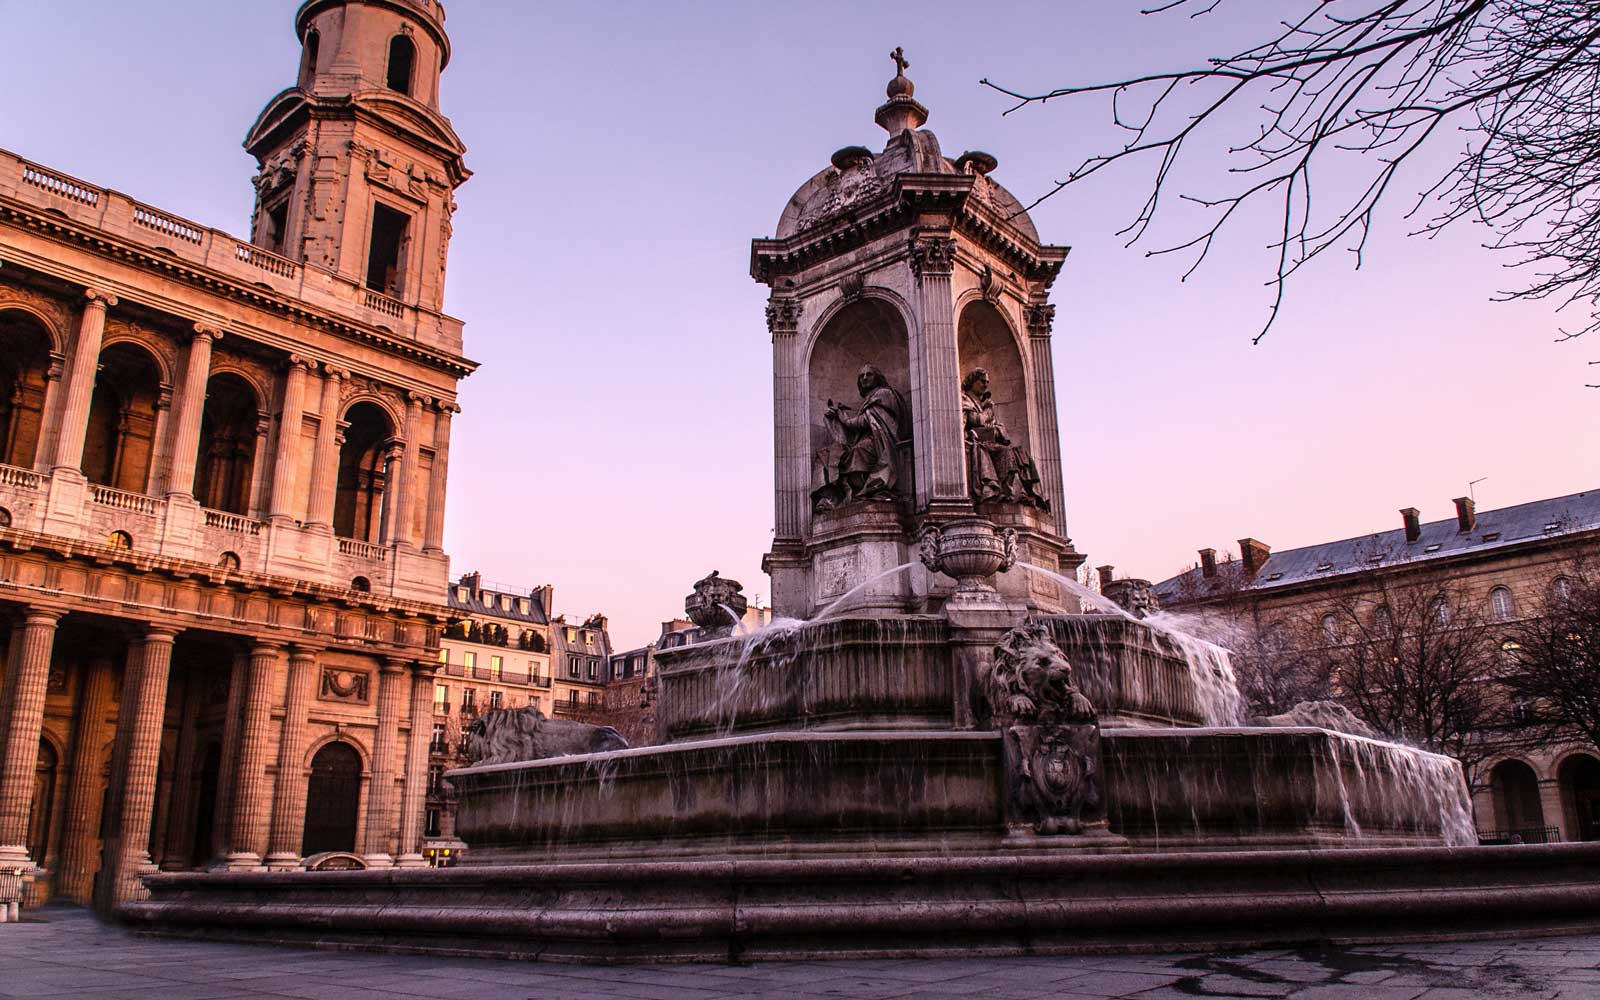 The Fontain and church of St. Sulpice in Paris, France